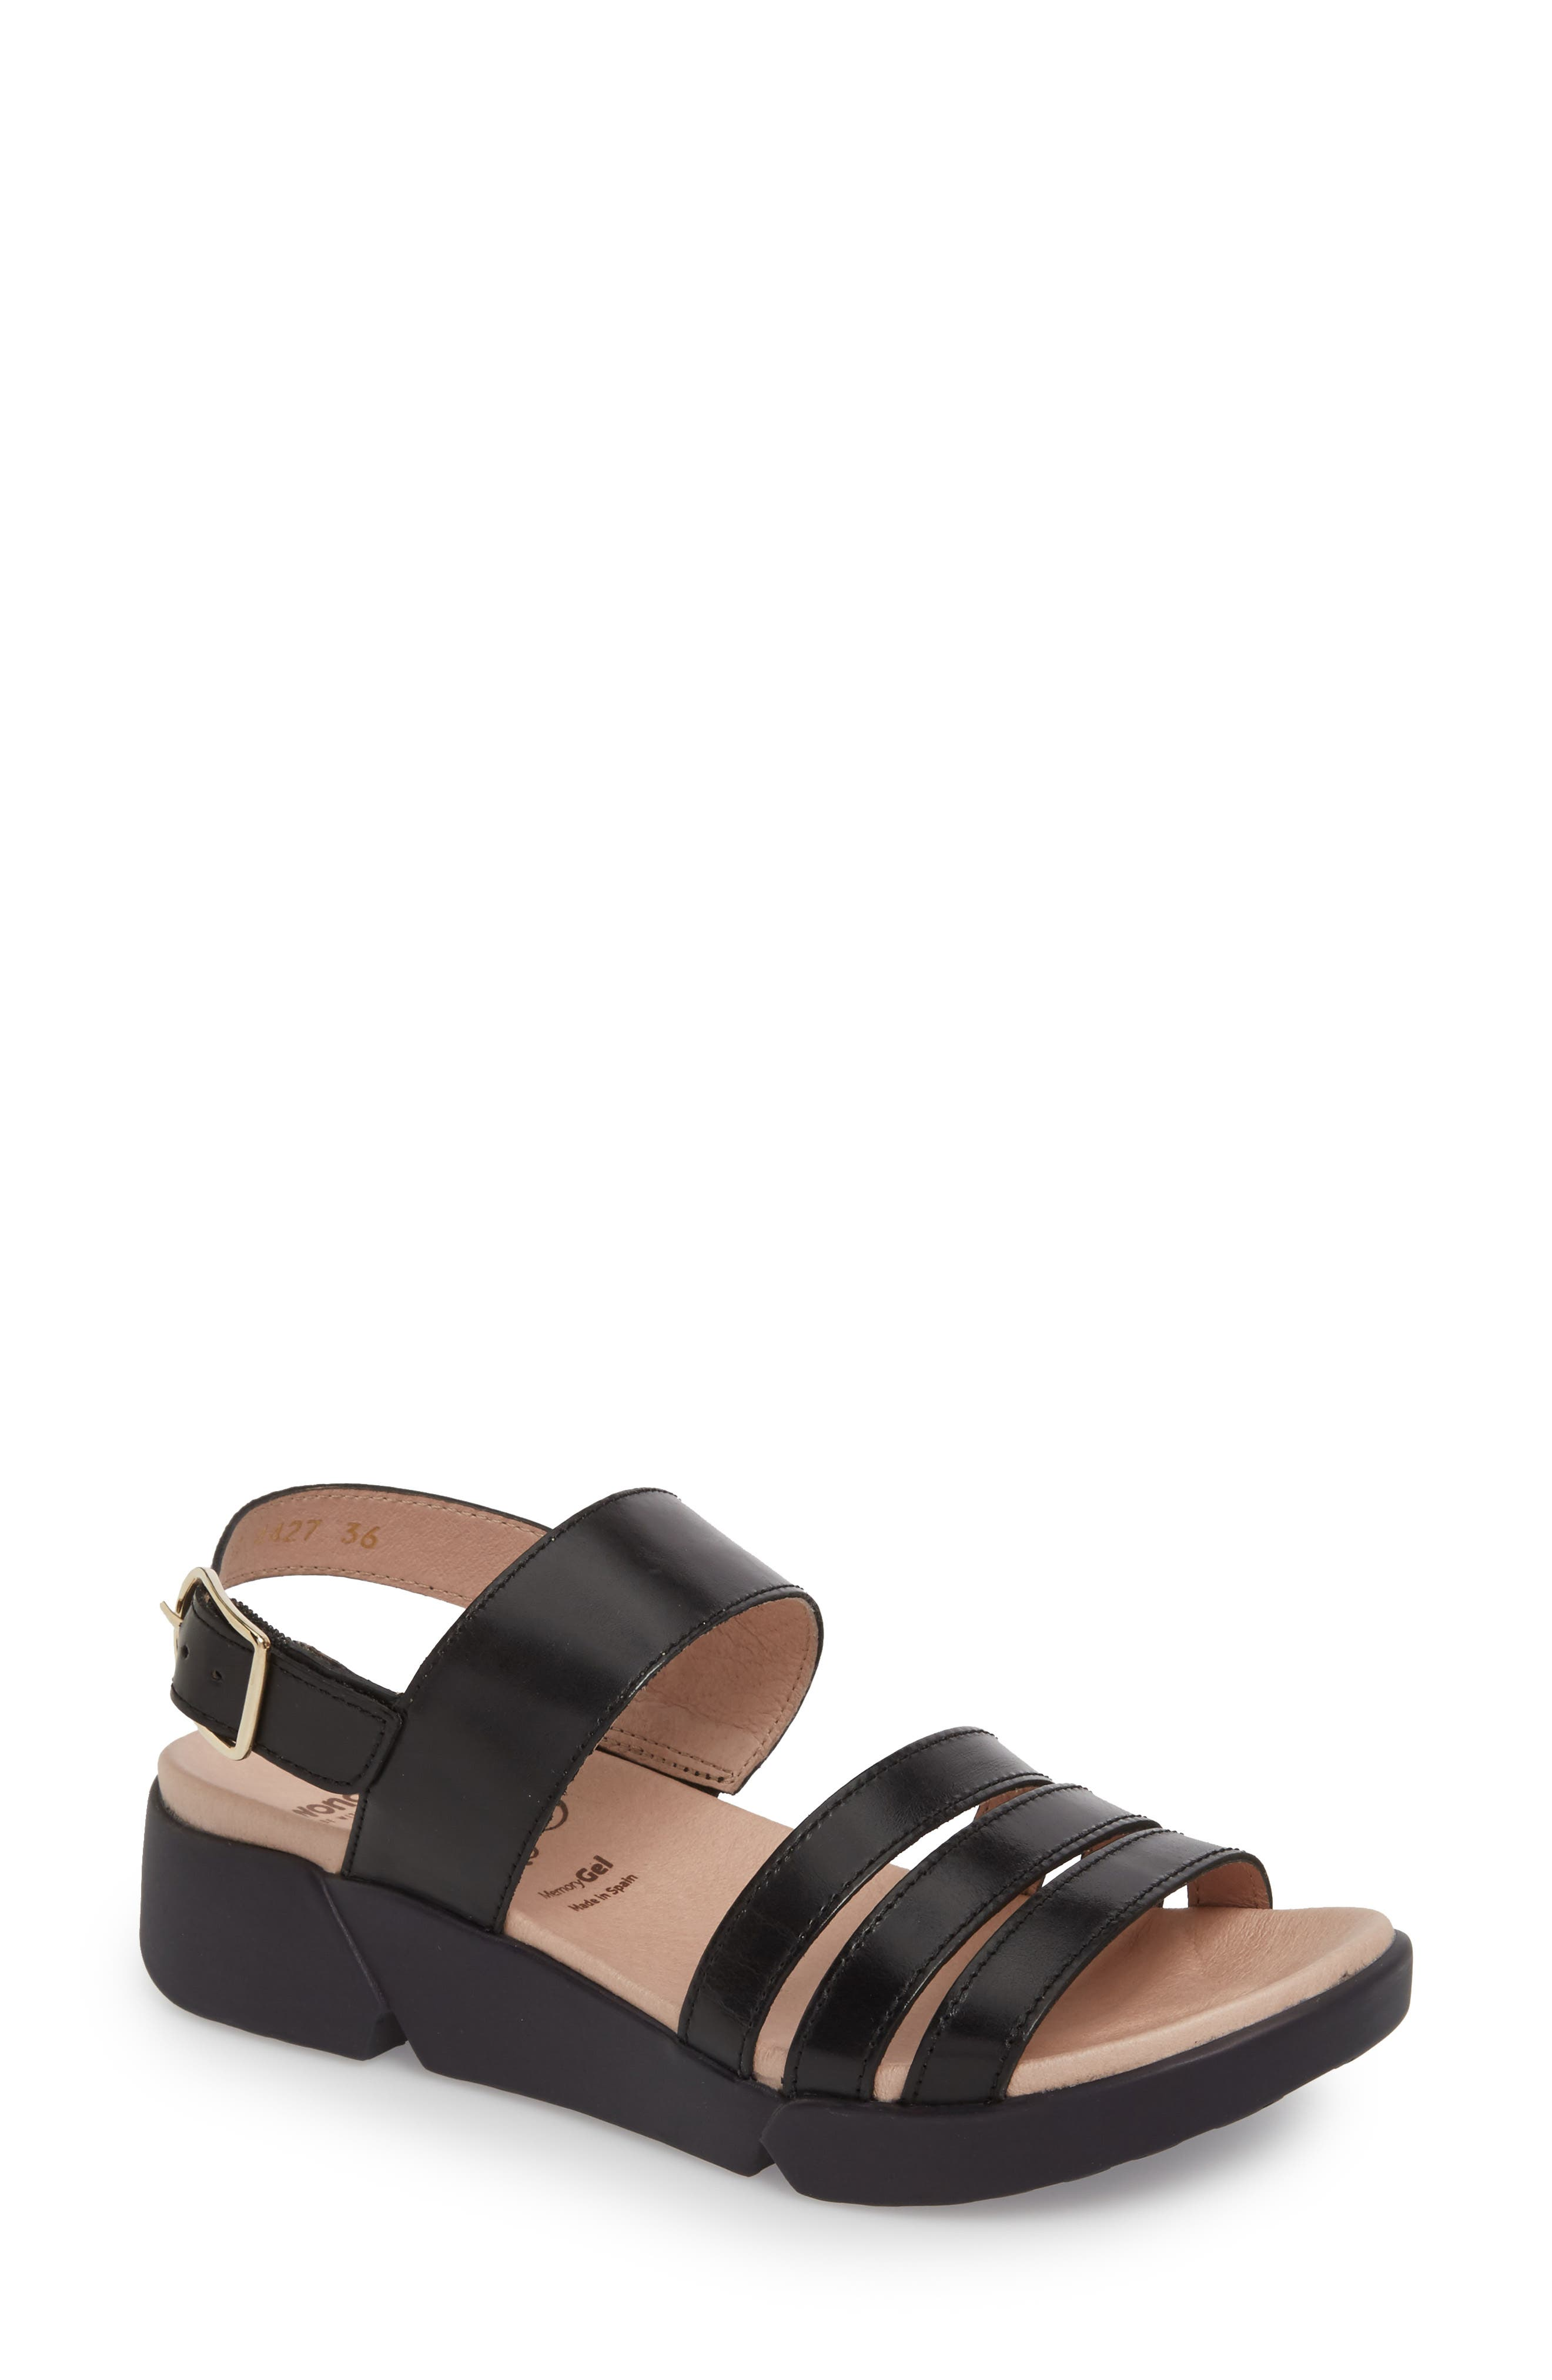 Wonders A-8004 Sandal - Black